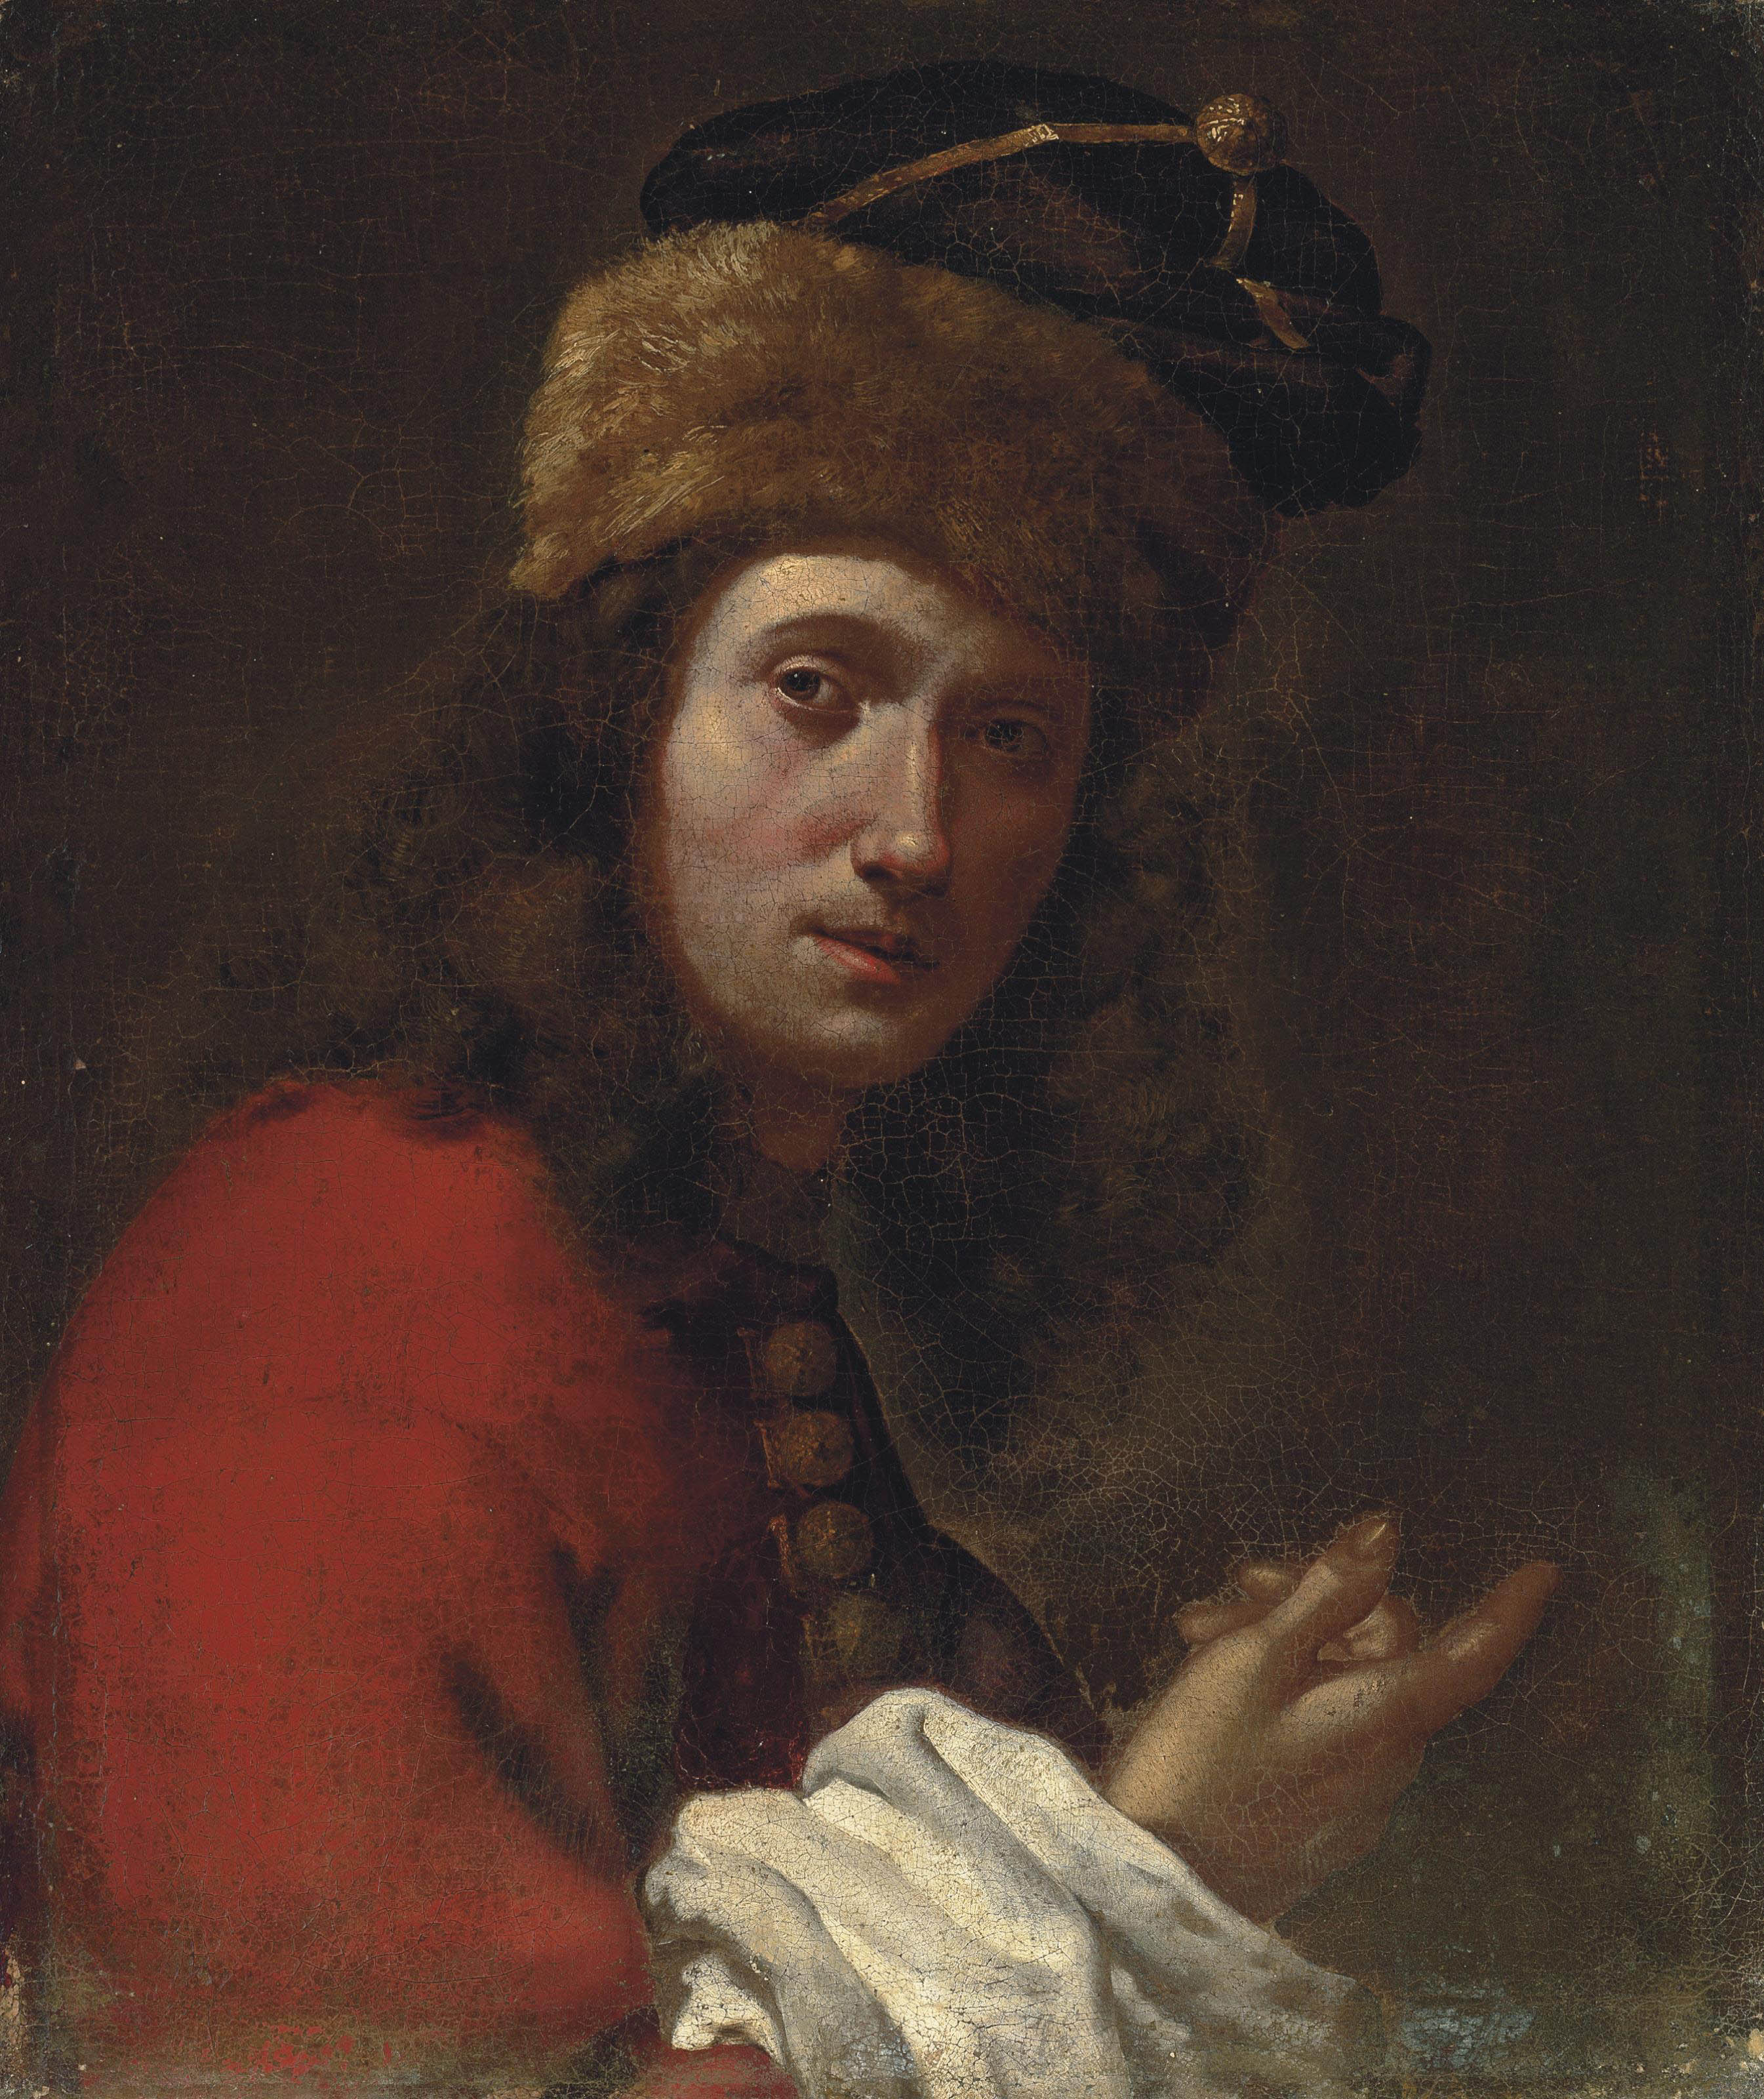 Portrait of a man, bust-length, in a red, fur-trimmed coat and black fur hat